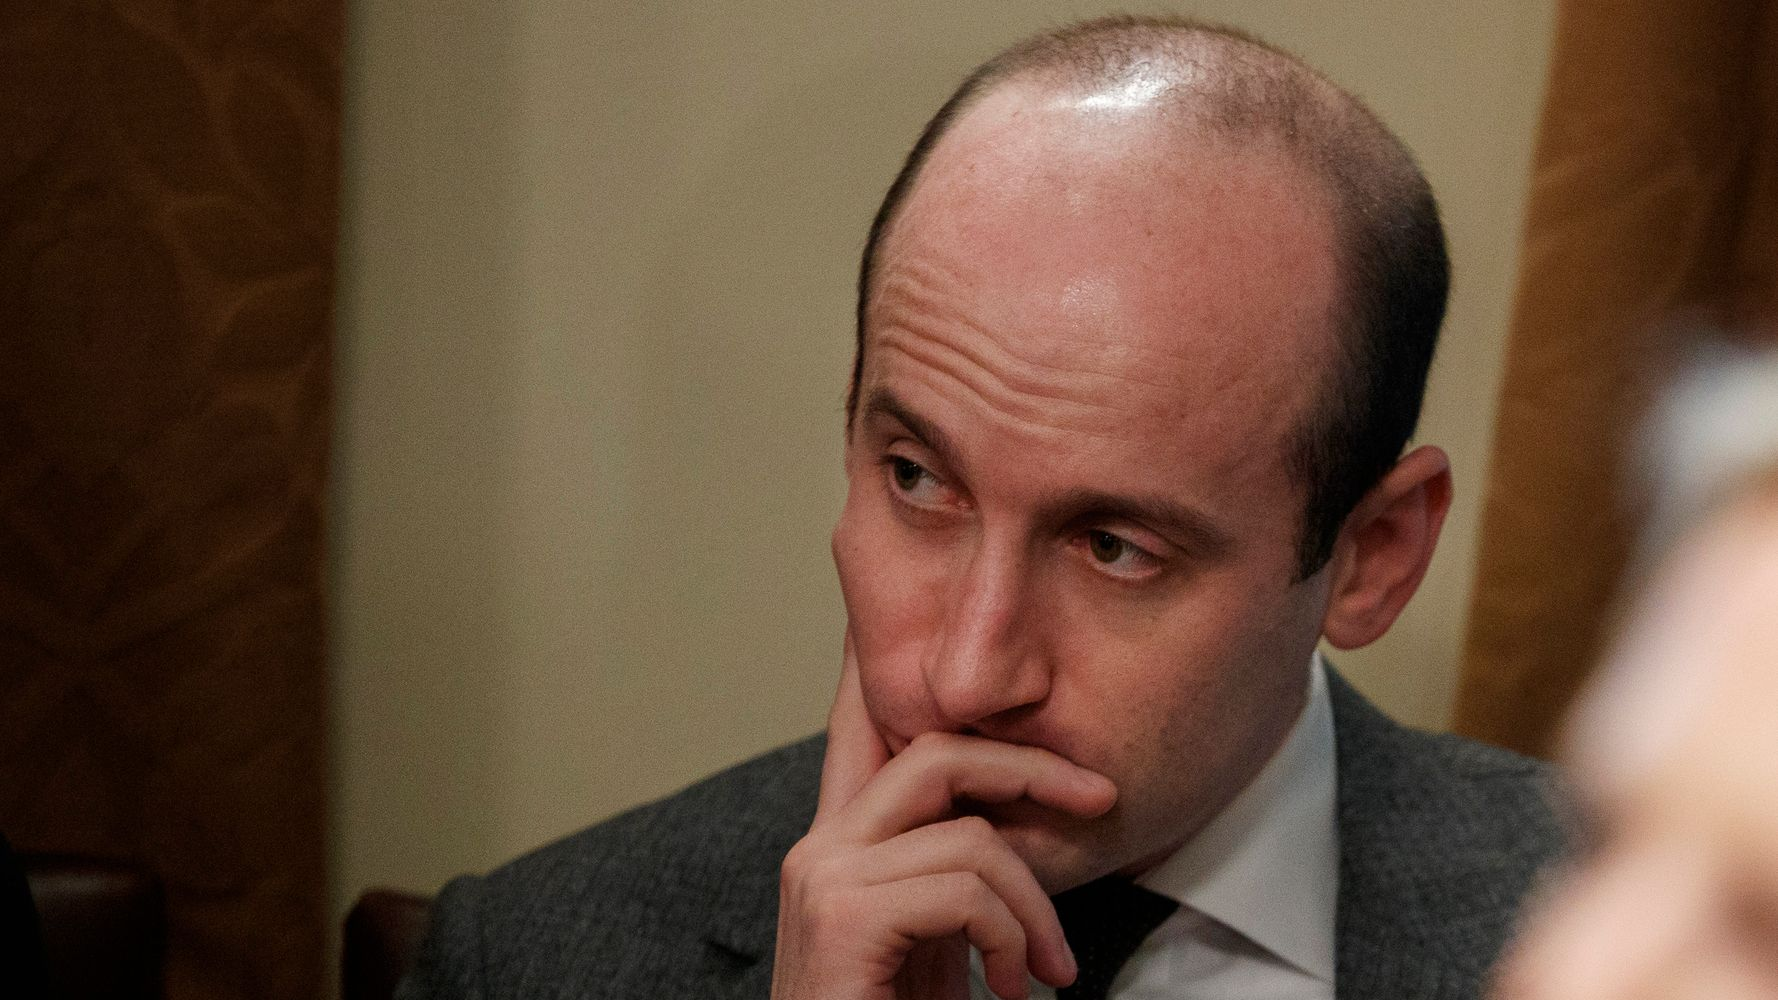 Jewish Groups Demand Stephen Miller Resign From White House